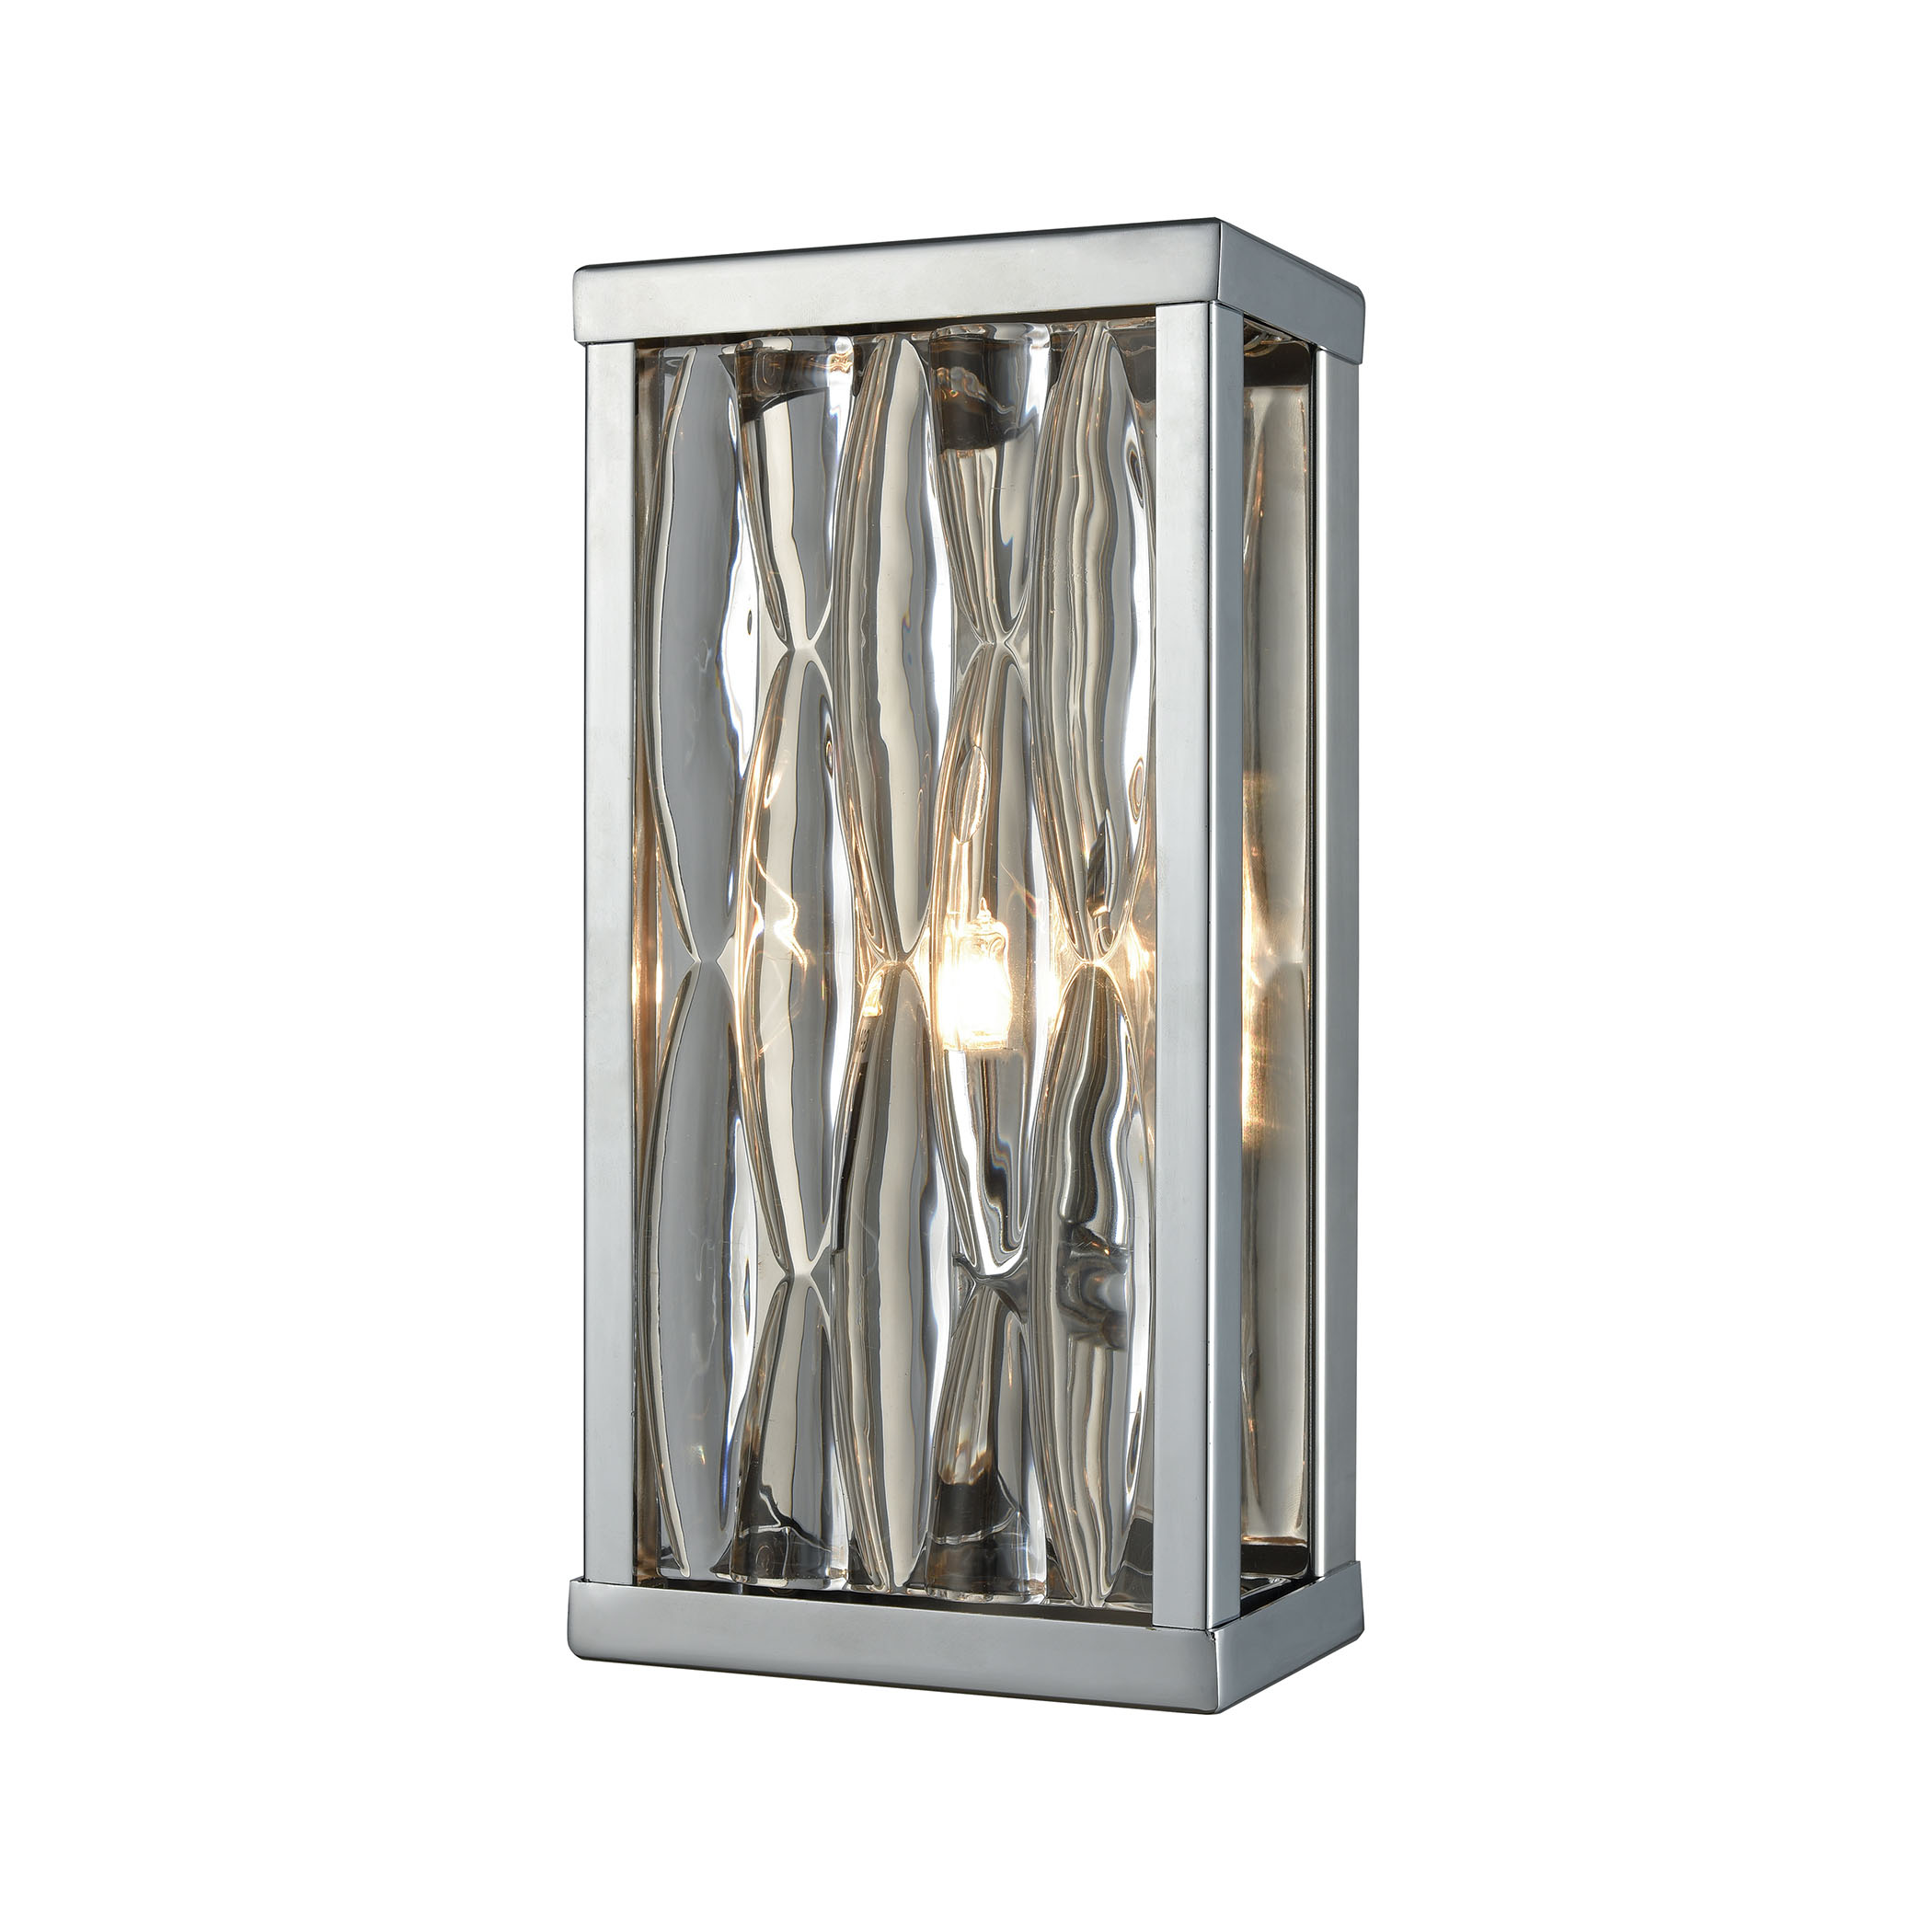 Riverflow 1 Light Vanity in Polished Chrome with Stacked River Stone Glass